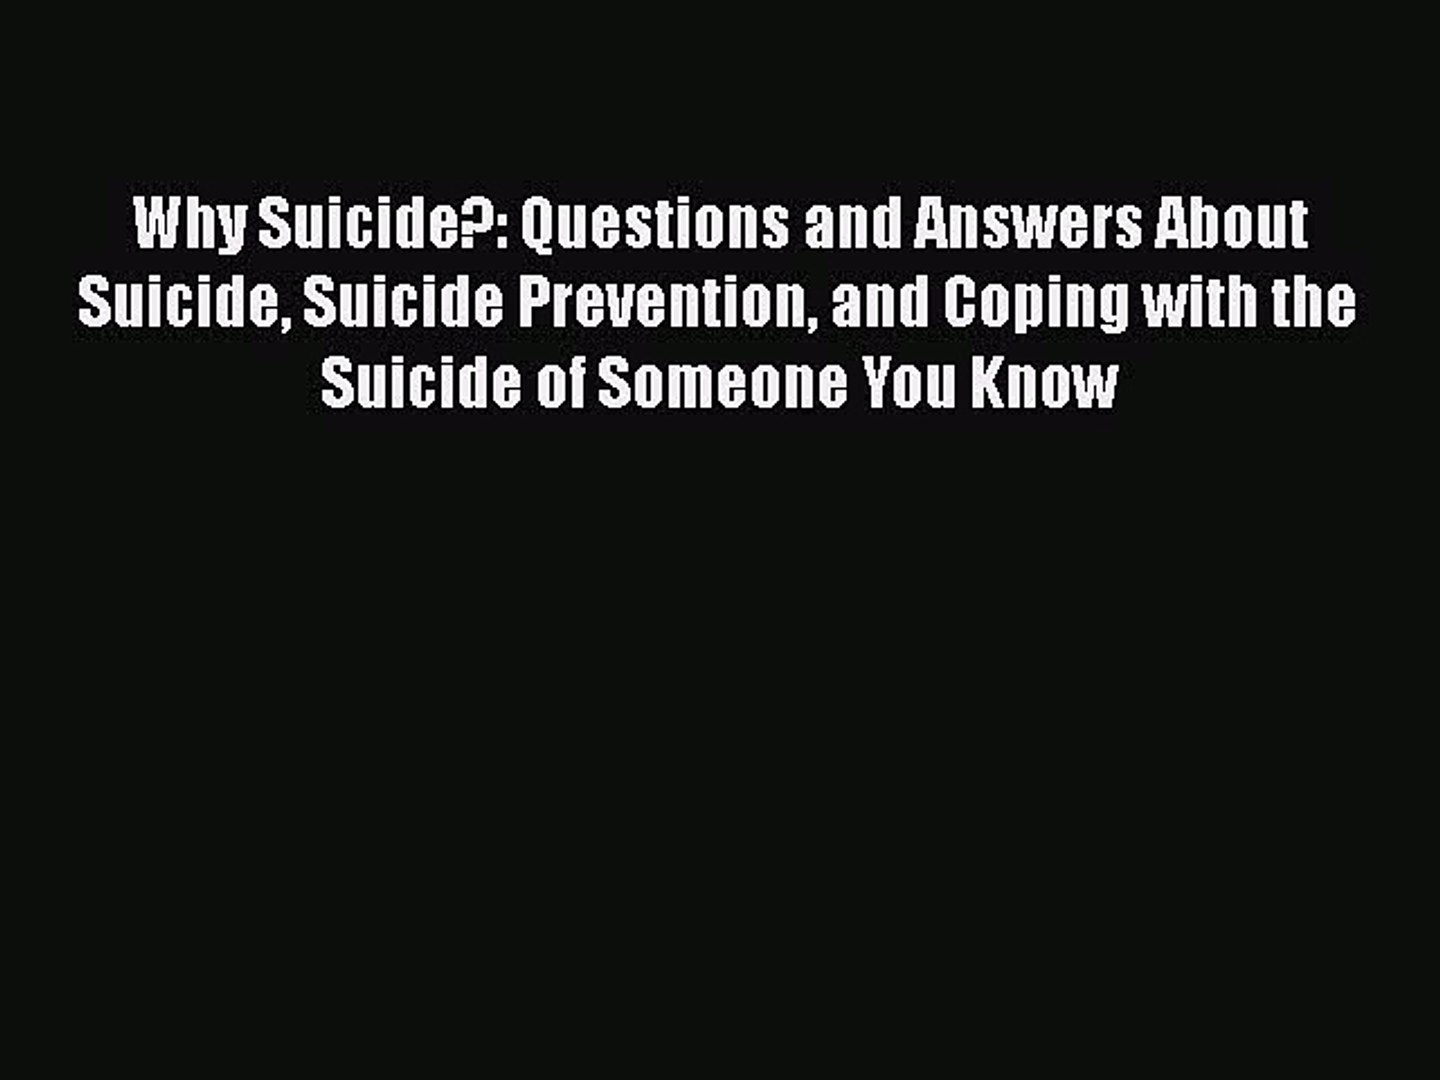 Download Why Suicide?: Questions and Answers About Suicide Suicide Prevention and Coping with